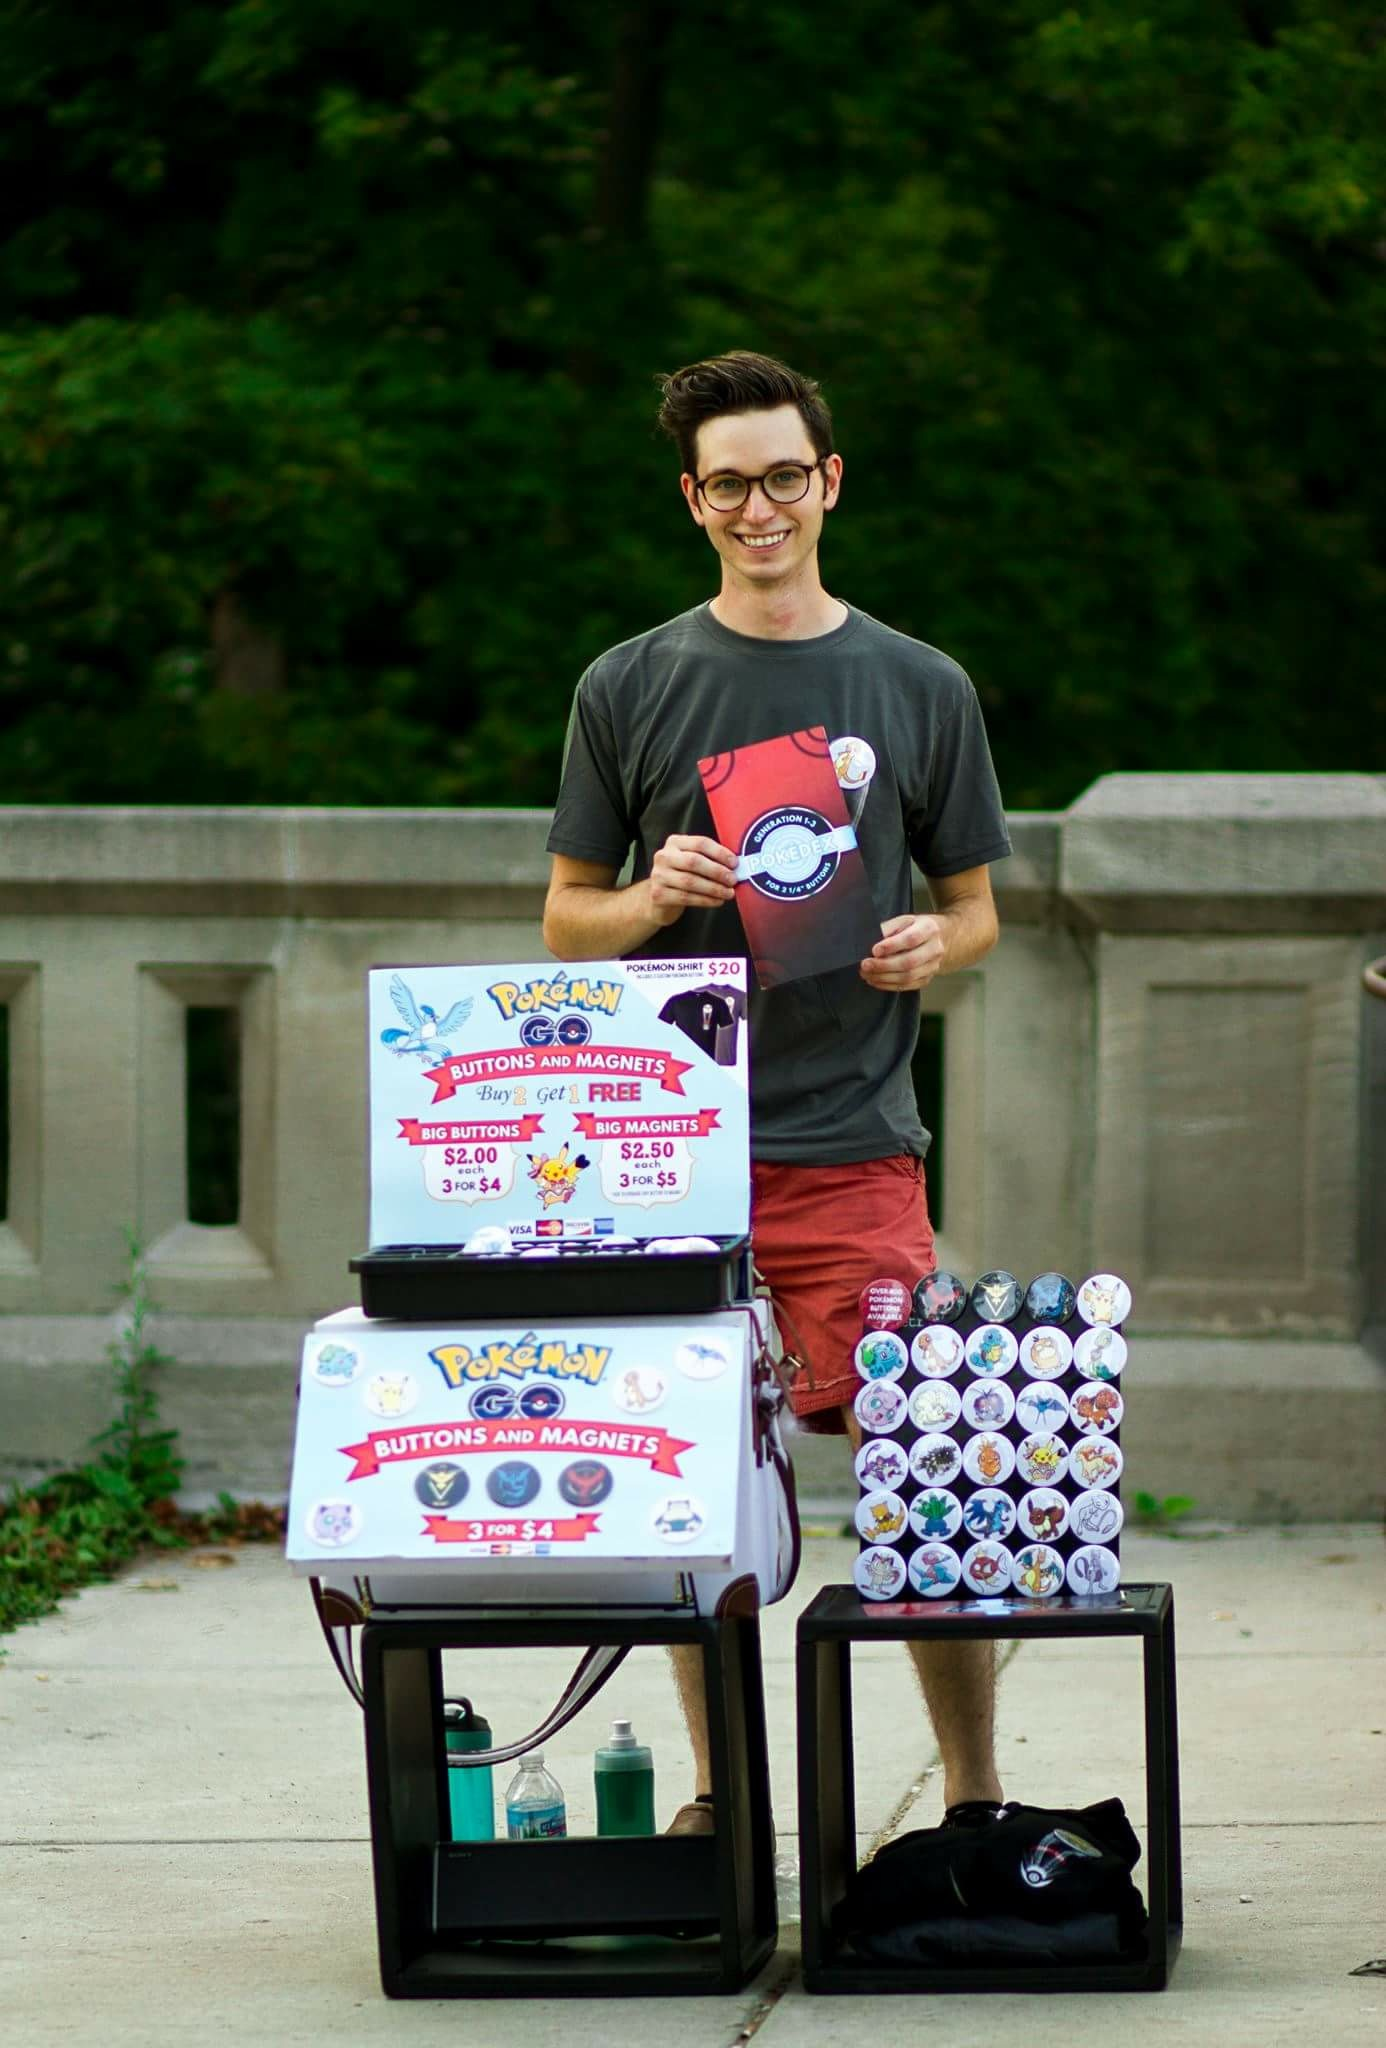 Desperate to pay his bills Stephan sells Pokemon buttons at Lake park to players of the Pokemon Go craze 2016.